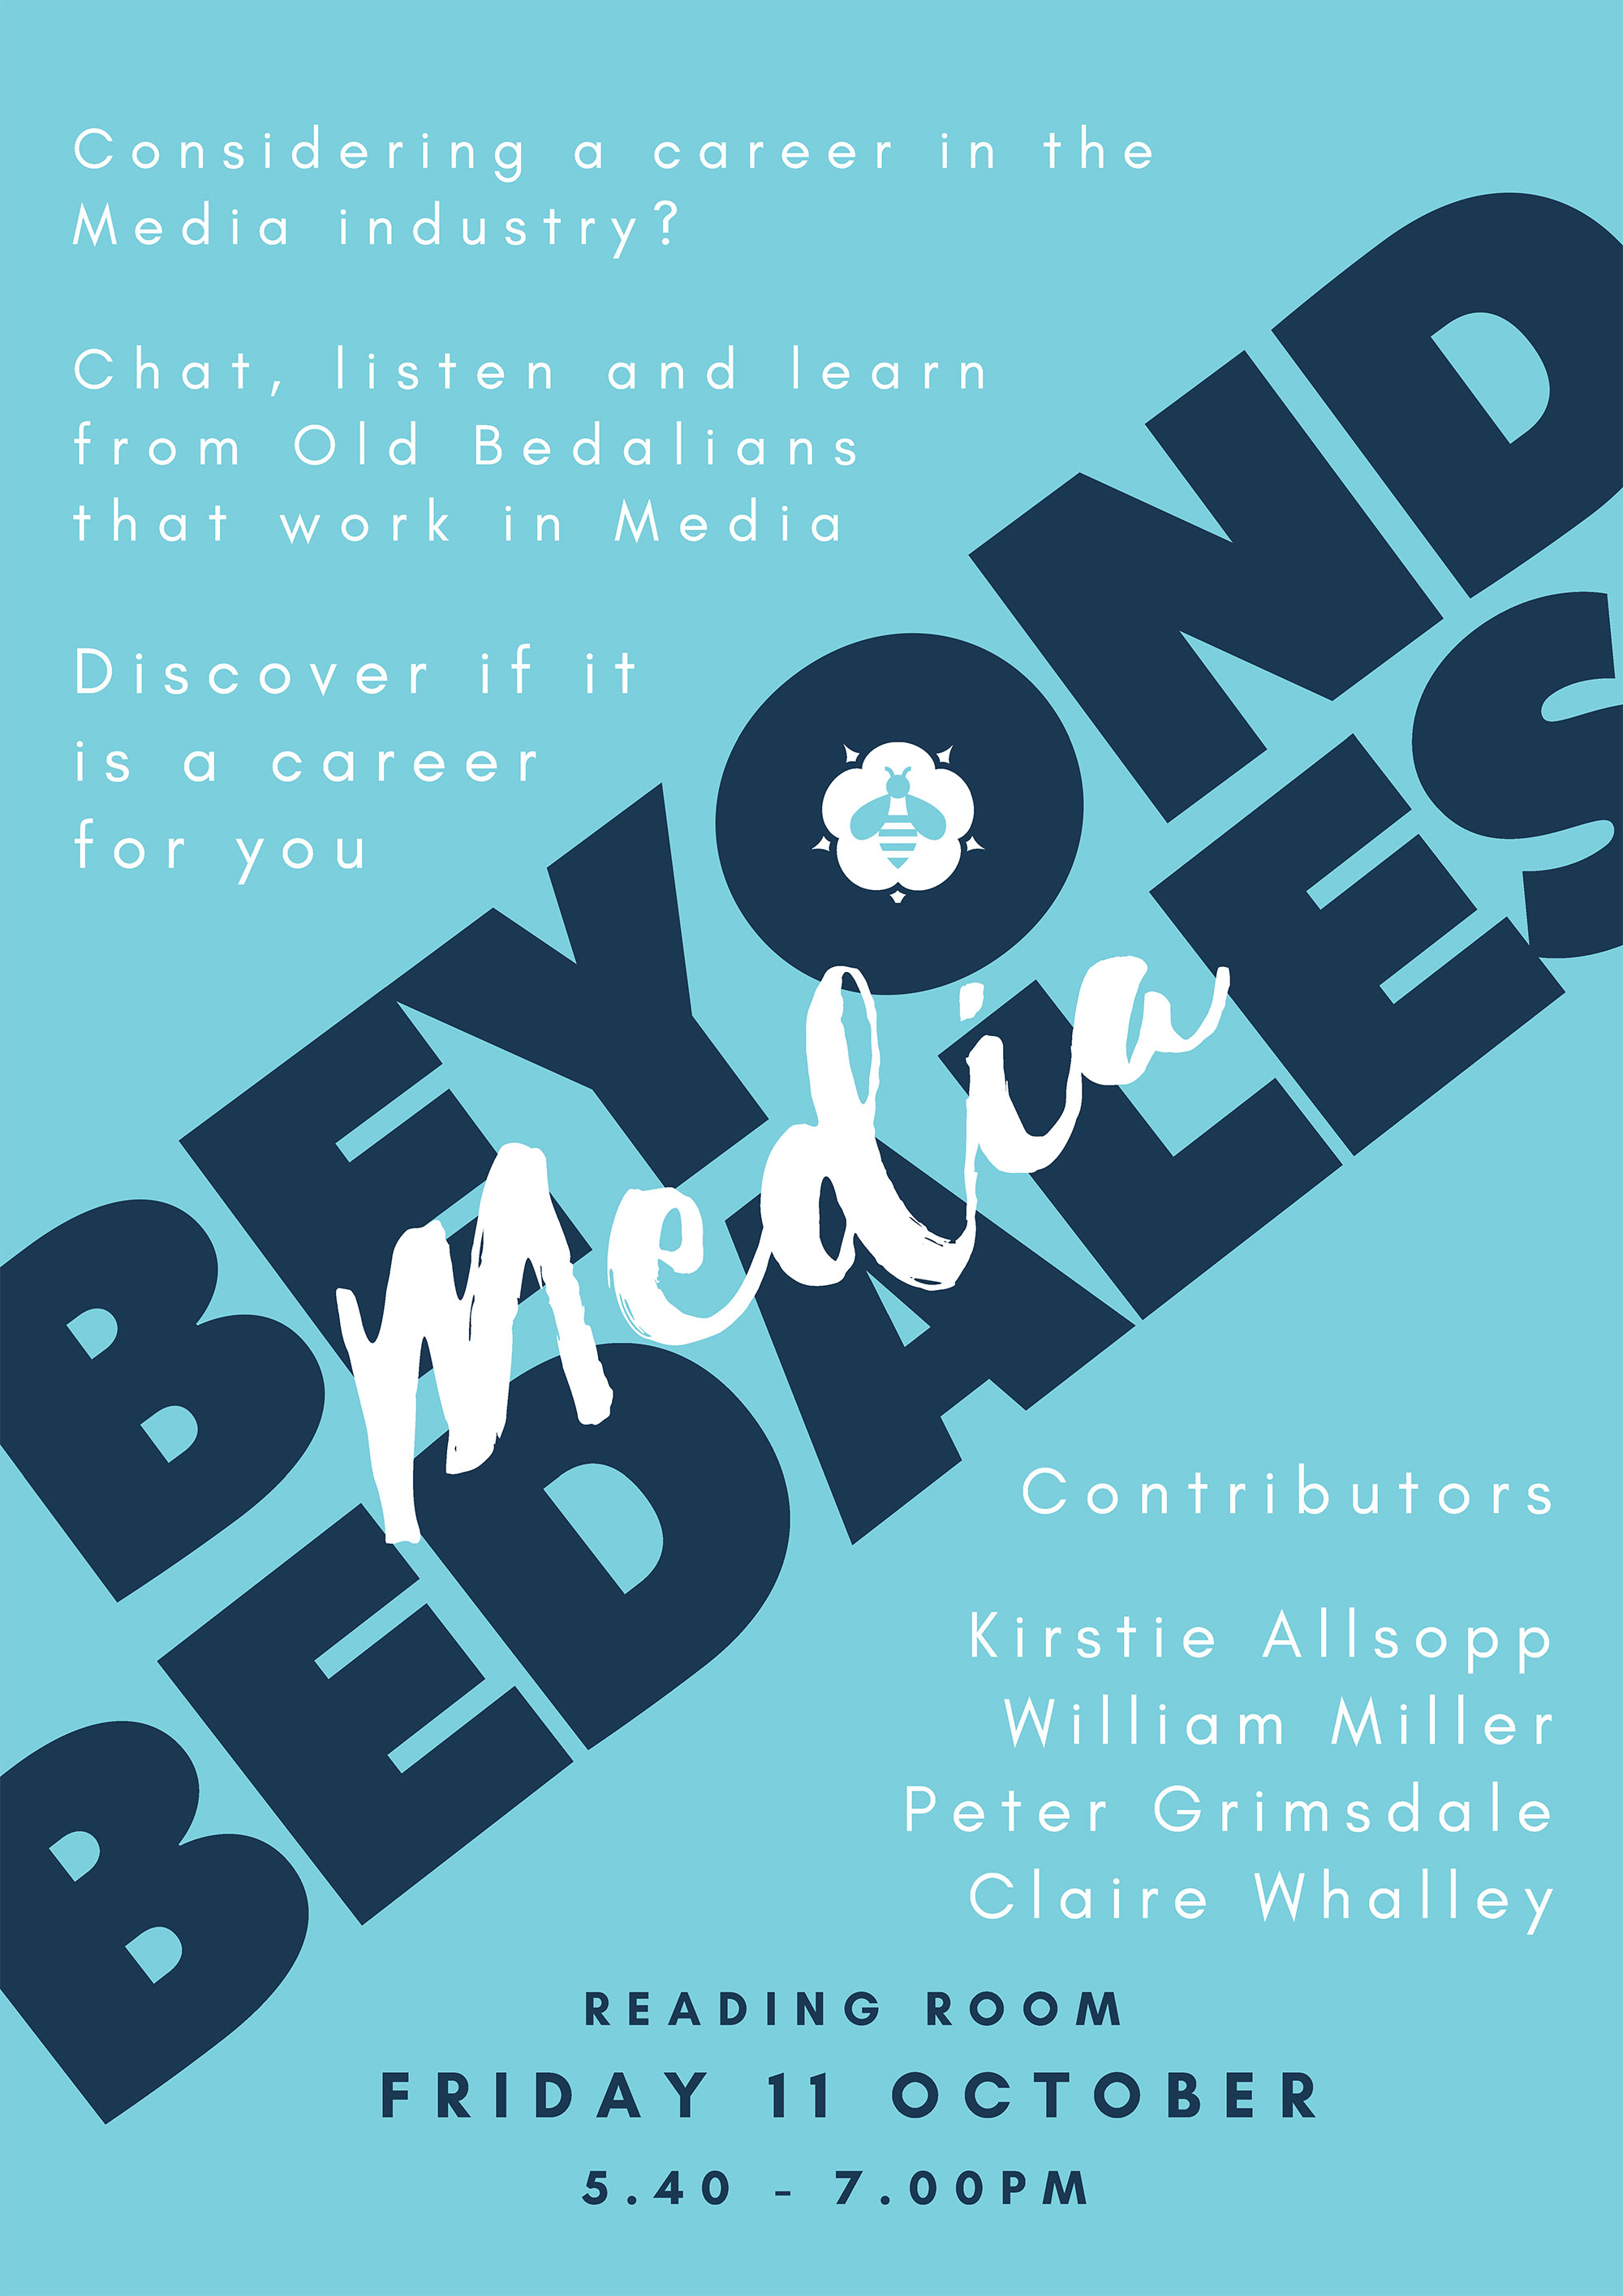 Beyond-Bedales-Media-Careers-Event